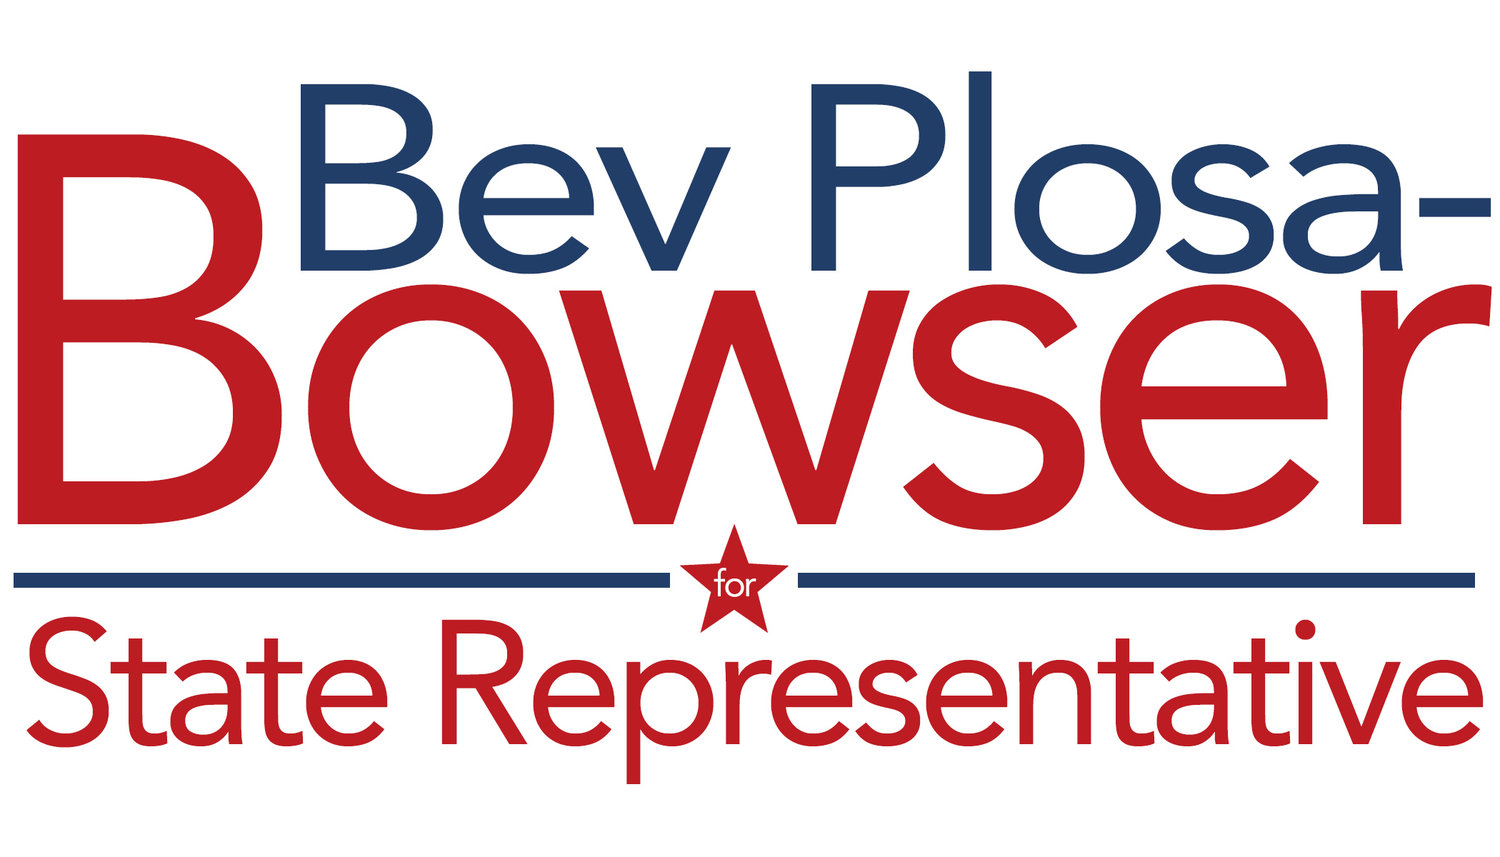 Vote Bev Plosa-Boswer for State Representative